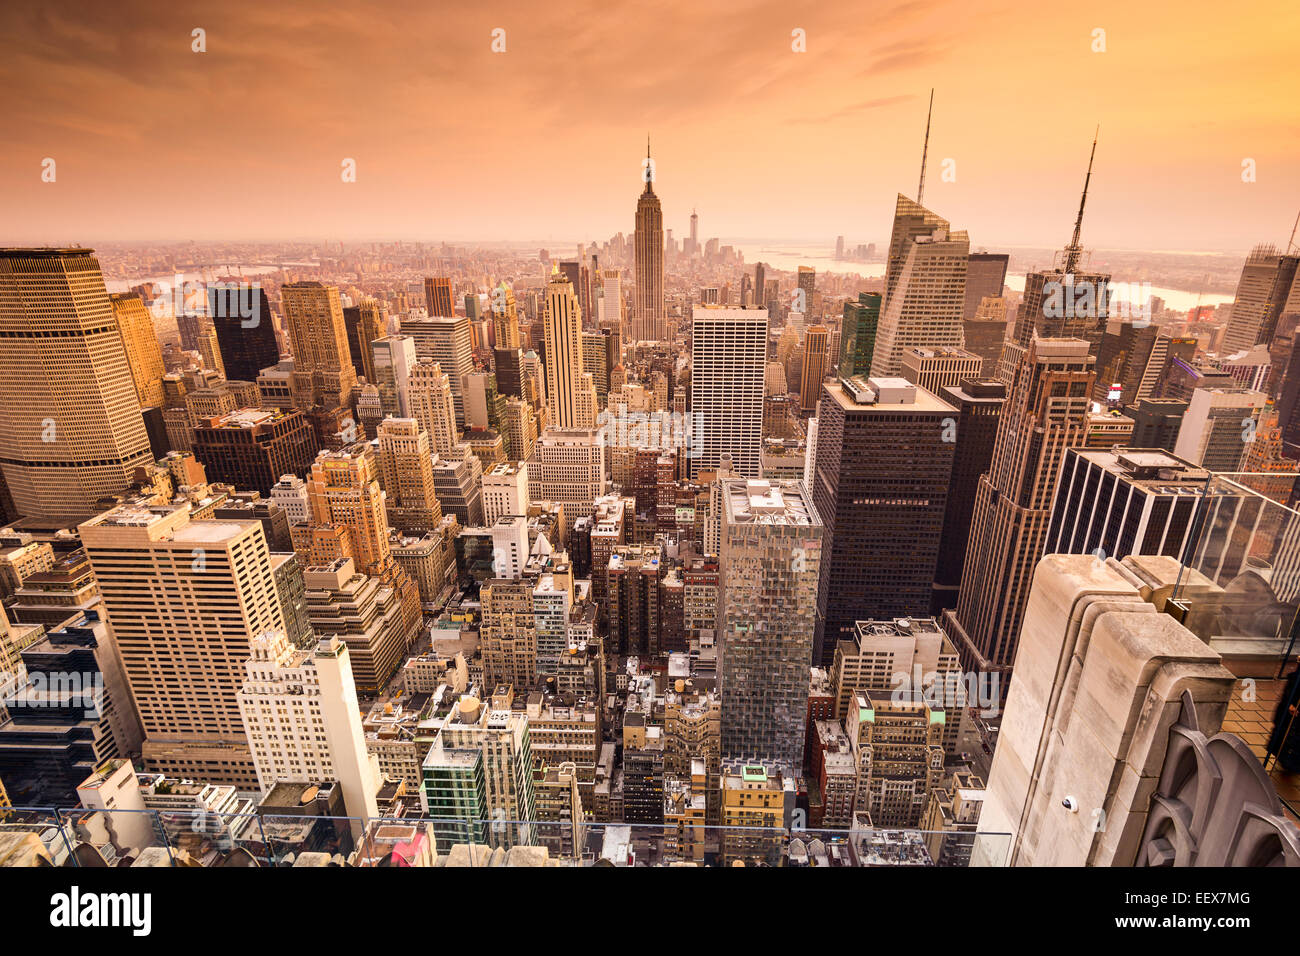 Skyline von New York City, USA in Midtown Manhattan. Stockbild